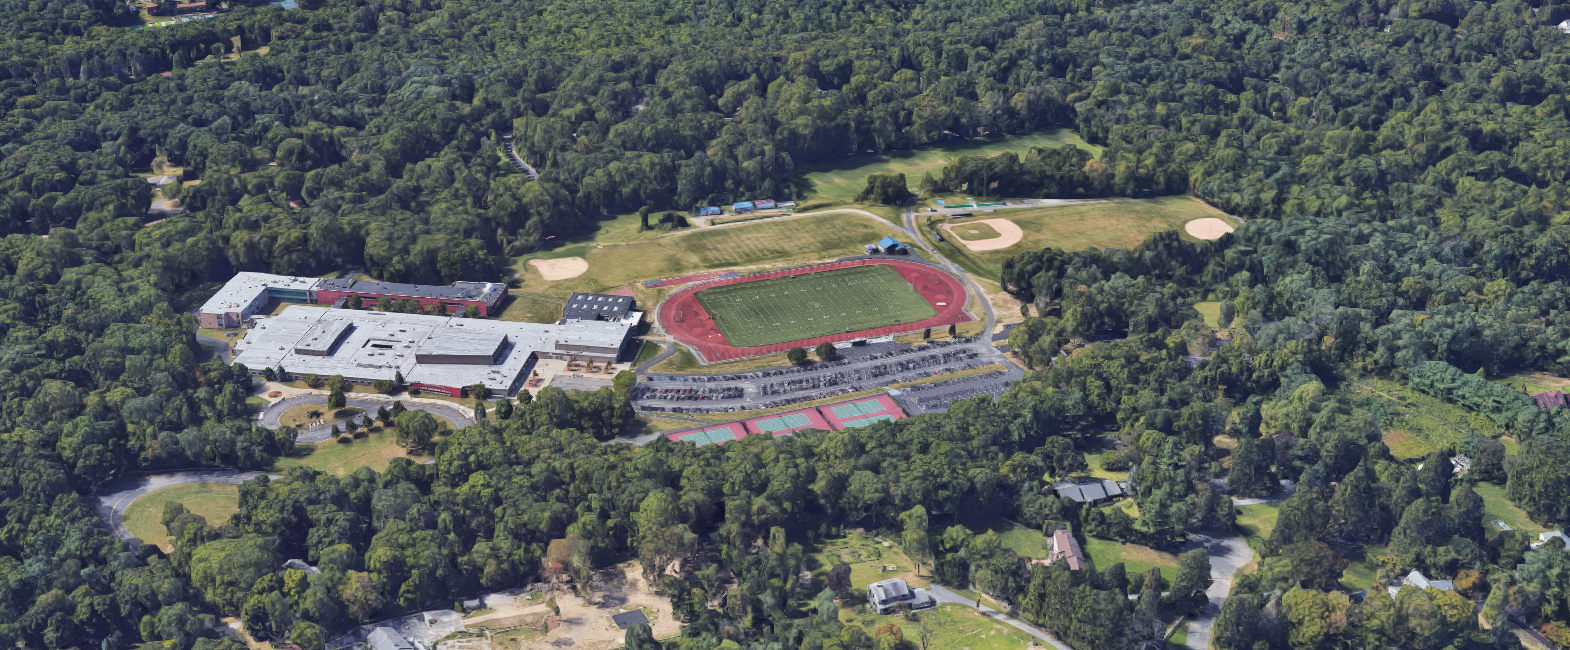 Byram Hills High School in Byram Hills Central School District in Armonk, New York